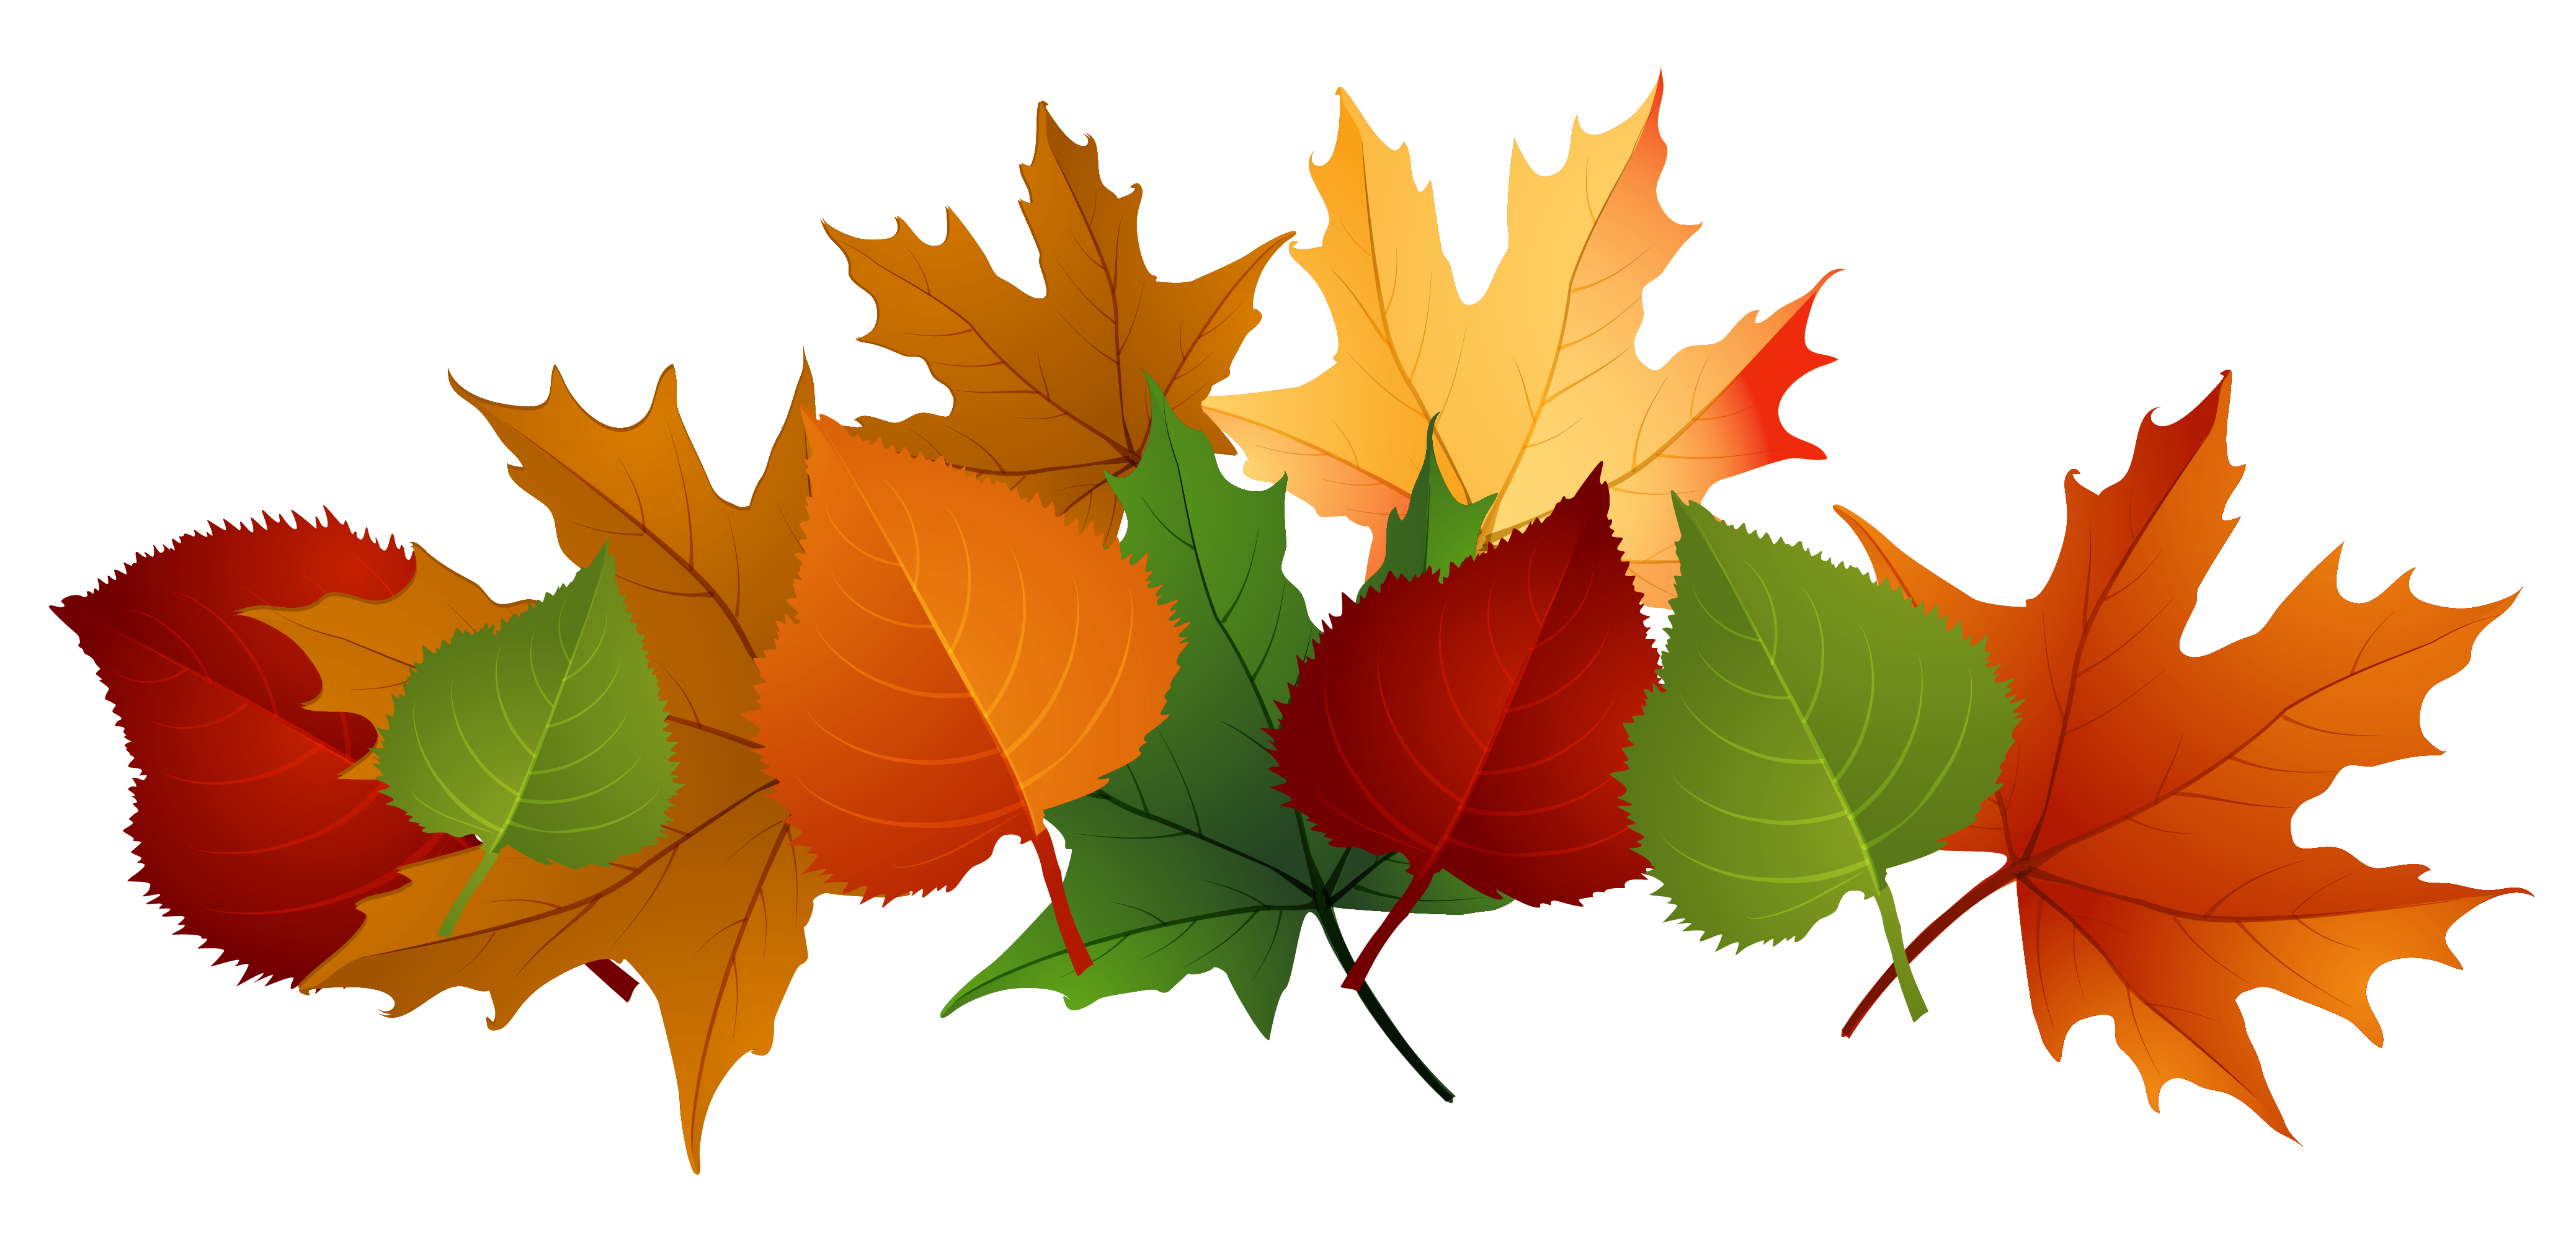 Leaves pile clip art. Windy clipart autumn